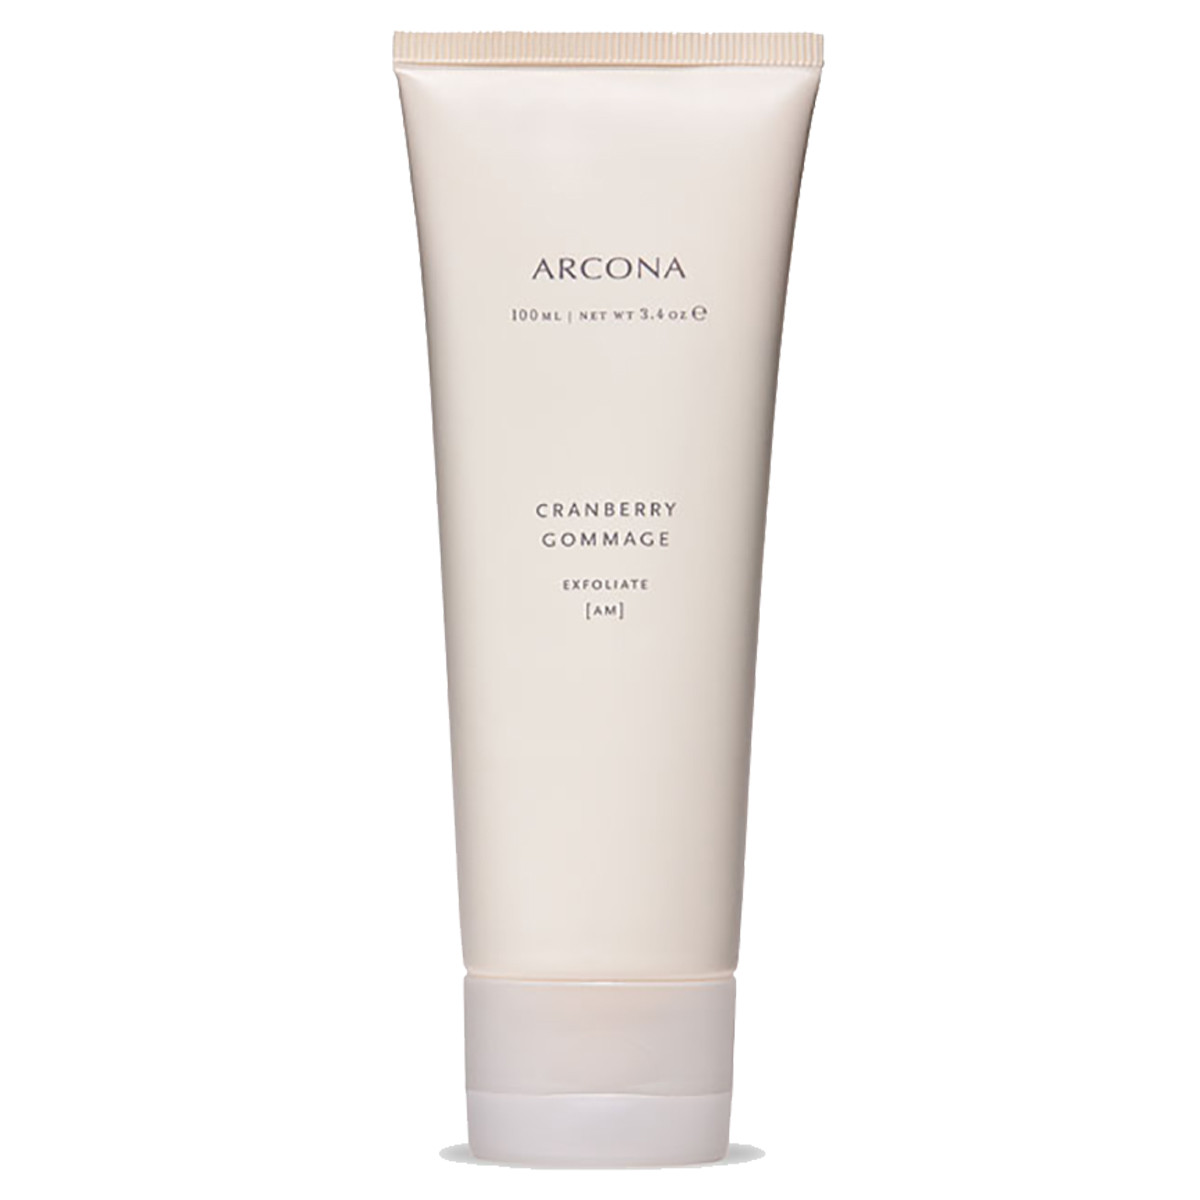 arcona facial products reviews